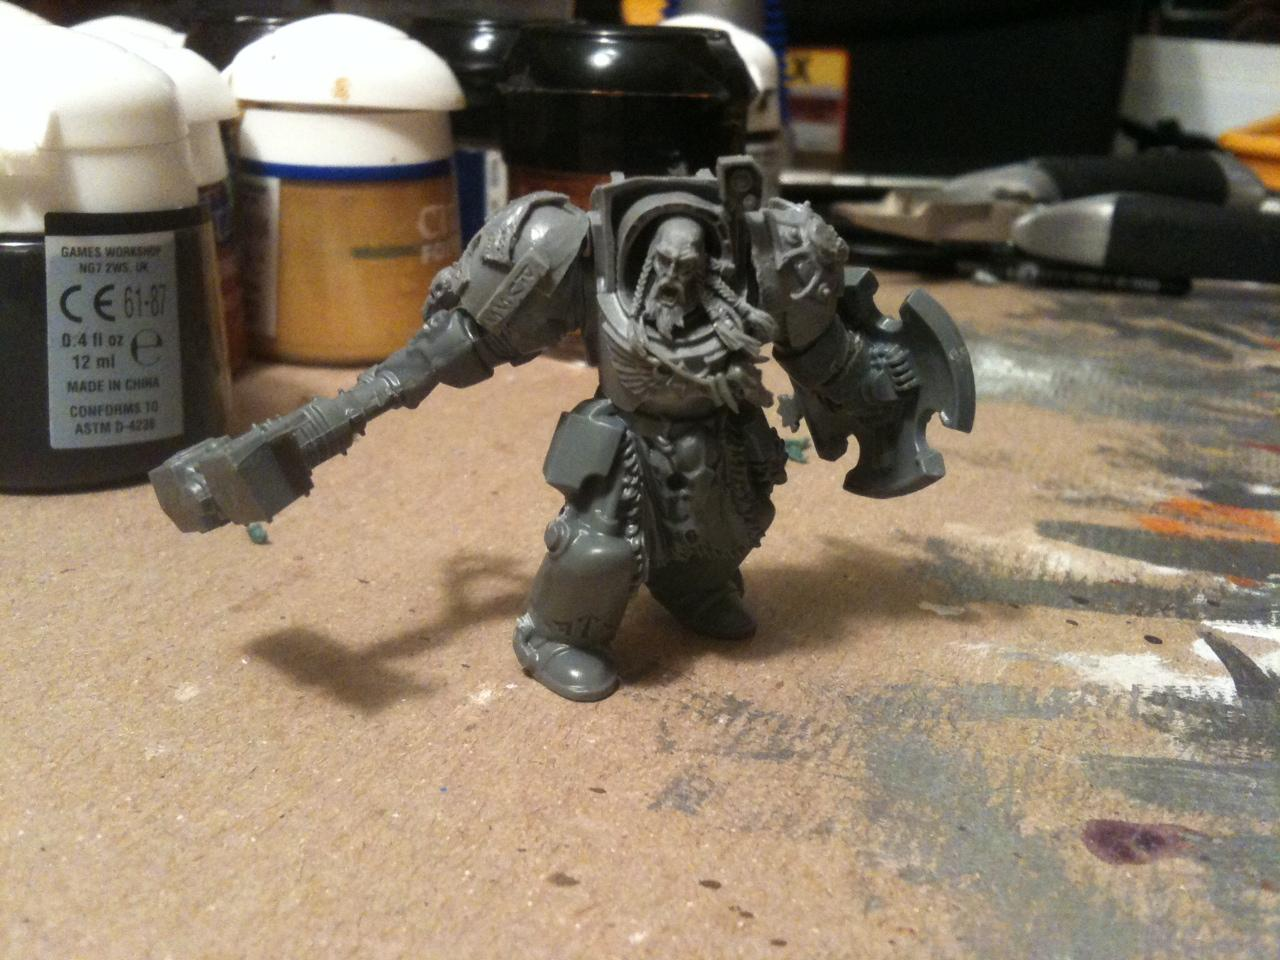 Arjac, Rockfist, Space Wolves